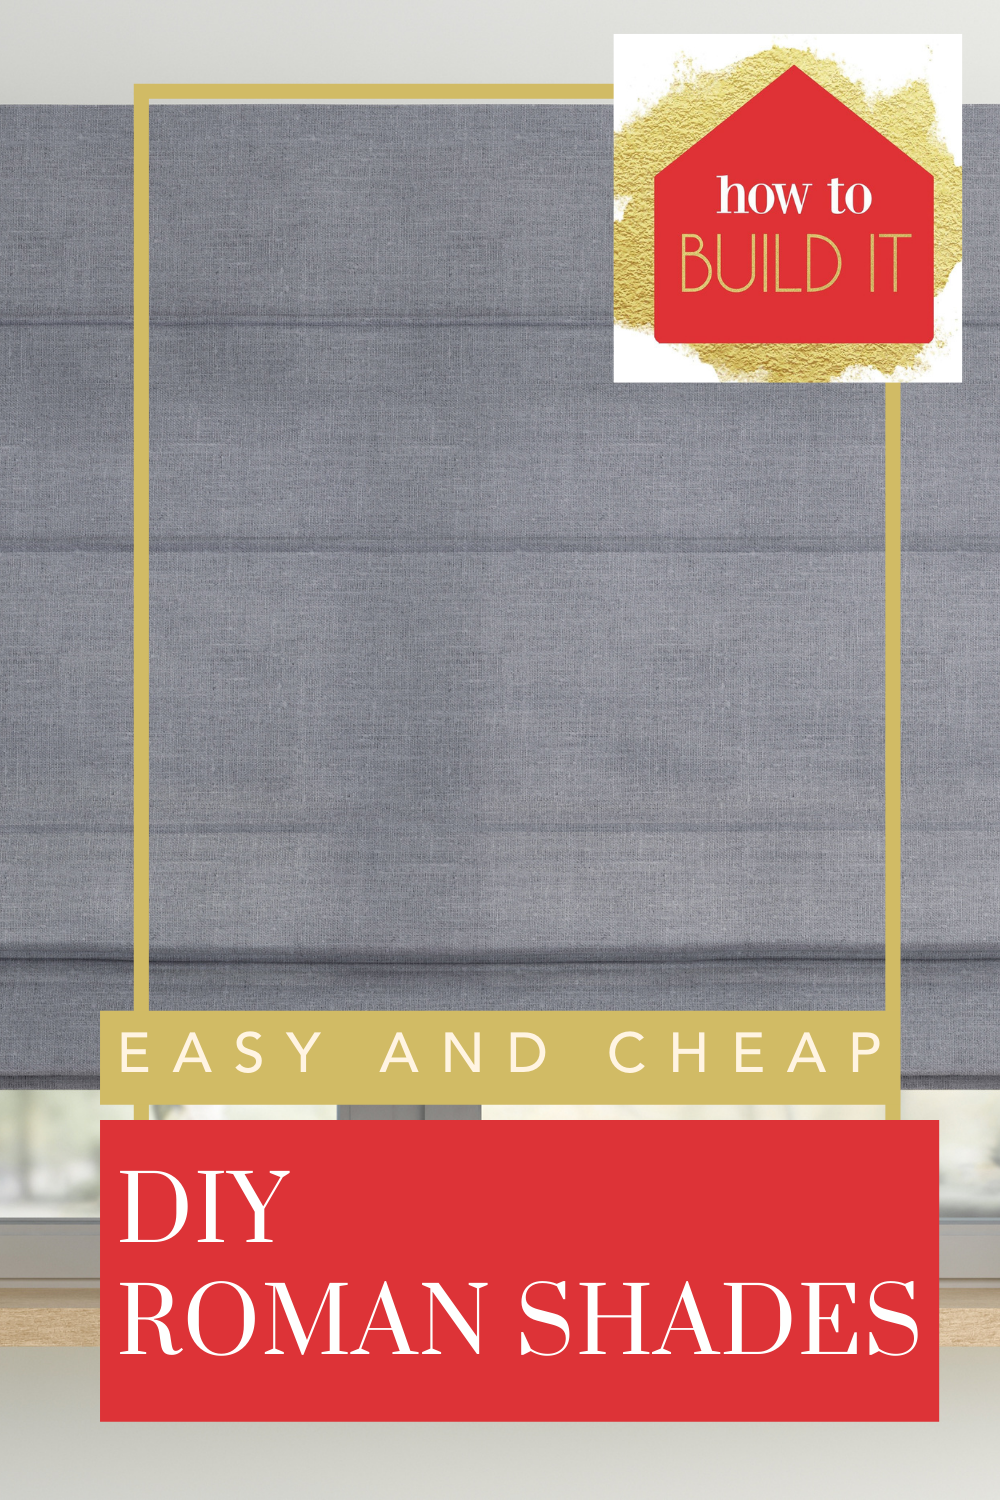 Howtobuildit.org is all about creating the perfect living space with your own hands. Find tons of amazing and easy DIY projects anyone can take on. Create the perfect window treatment for your home with these DIY roman shades.